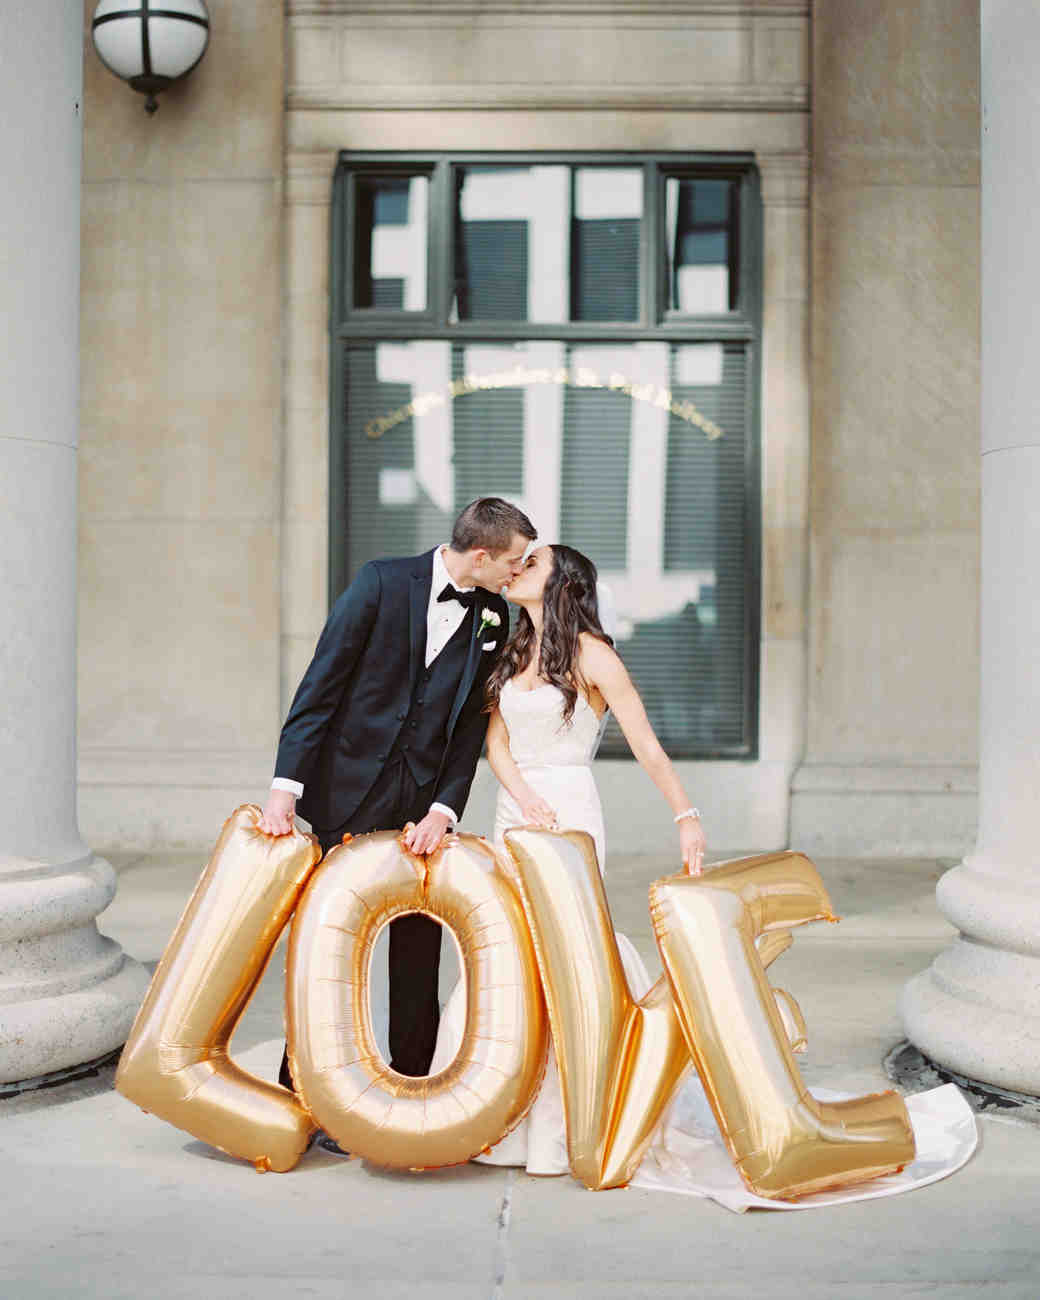 balloon wedding ideas